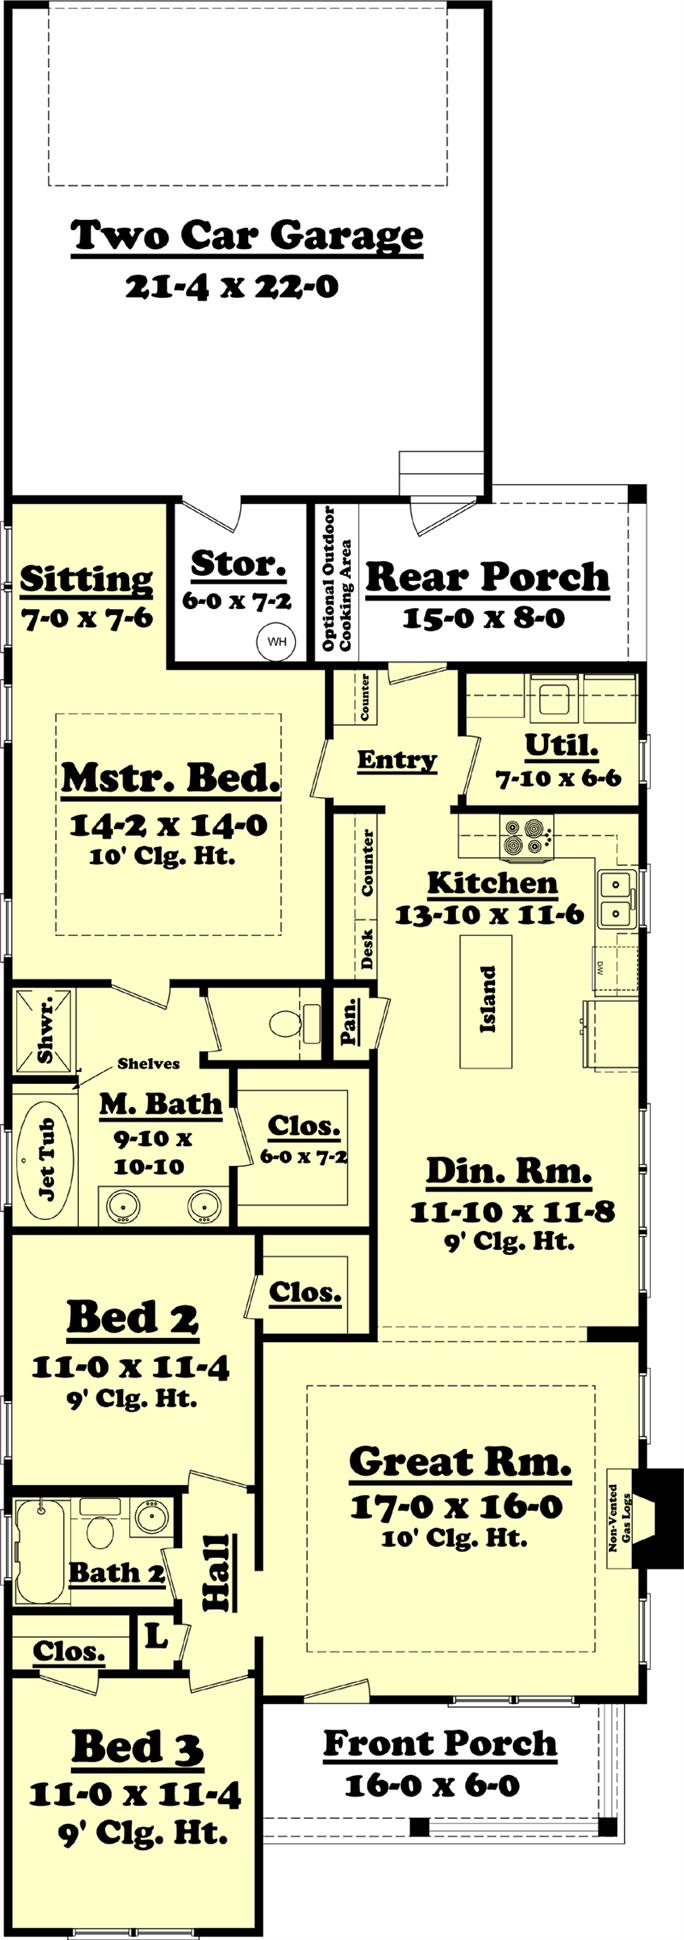 house plan 142 1060 3 bdrm 1 550 sq ft cottage home 142 1060 floor plan main level